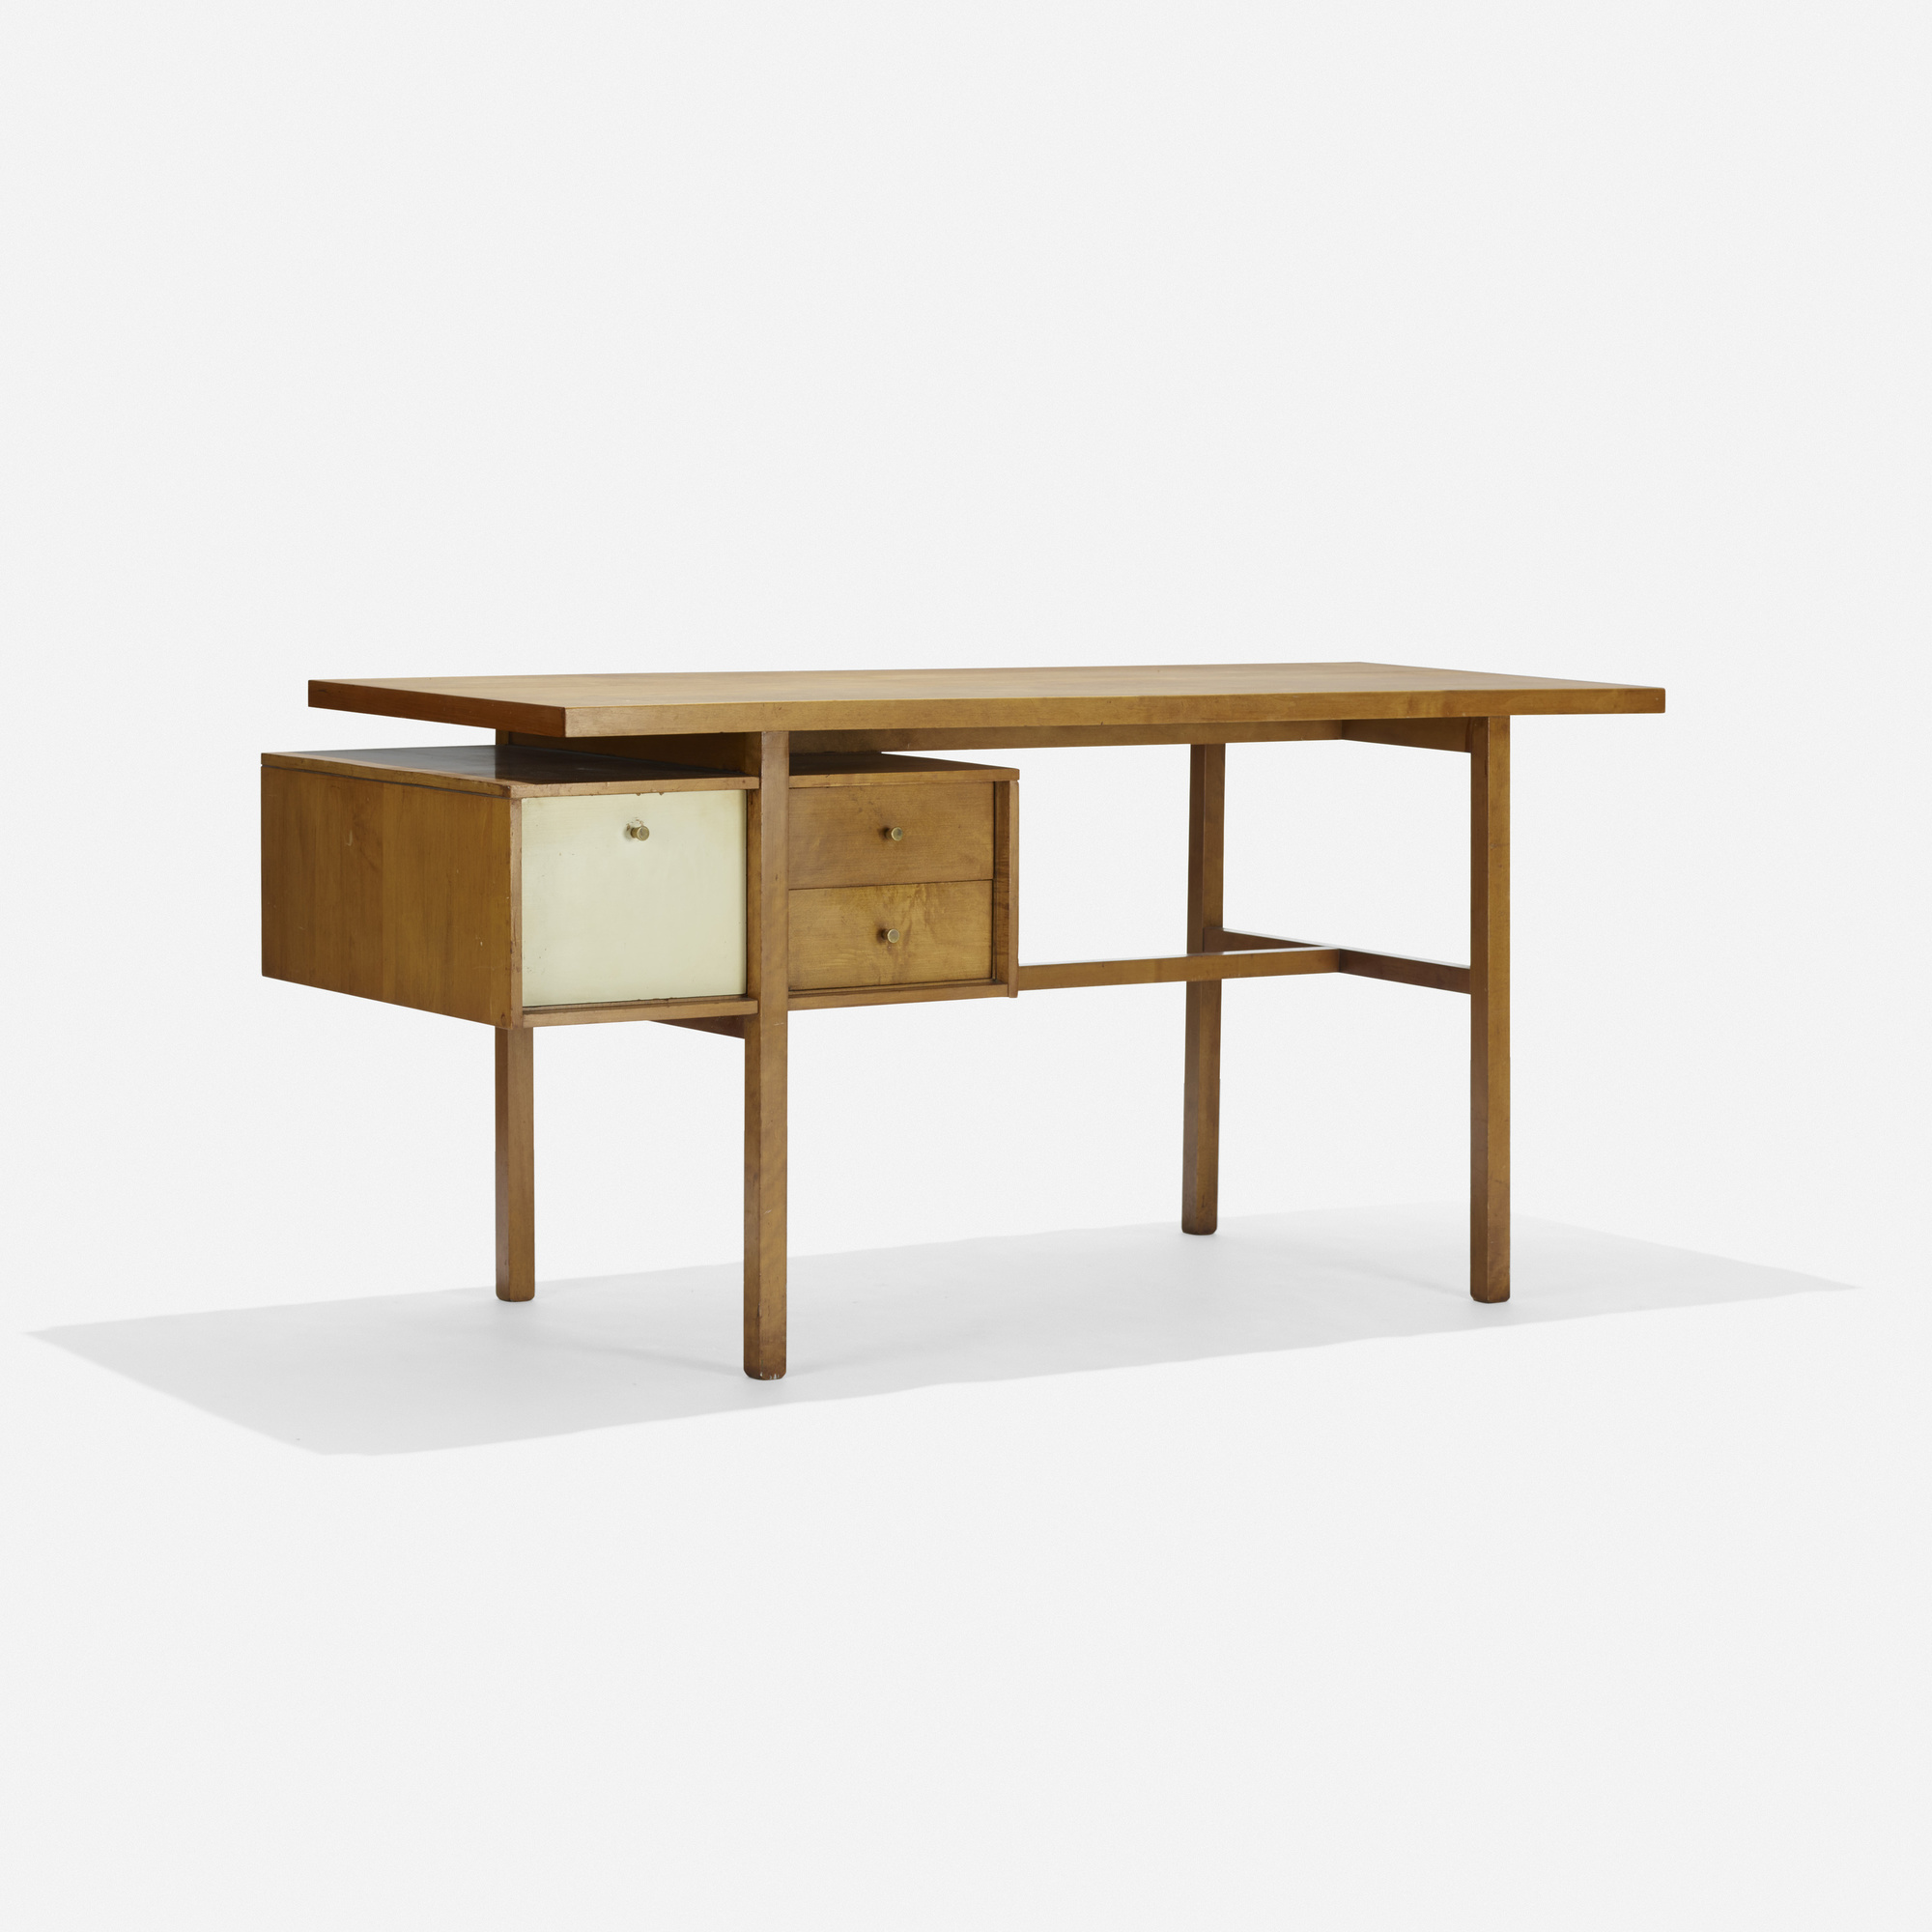 228: Milo Baughman / desk (1 of 3)